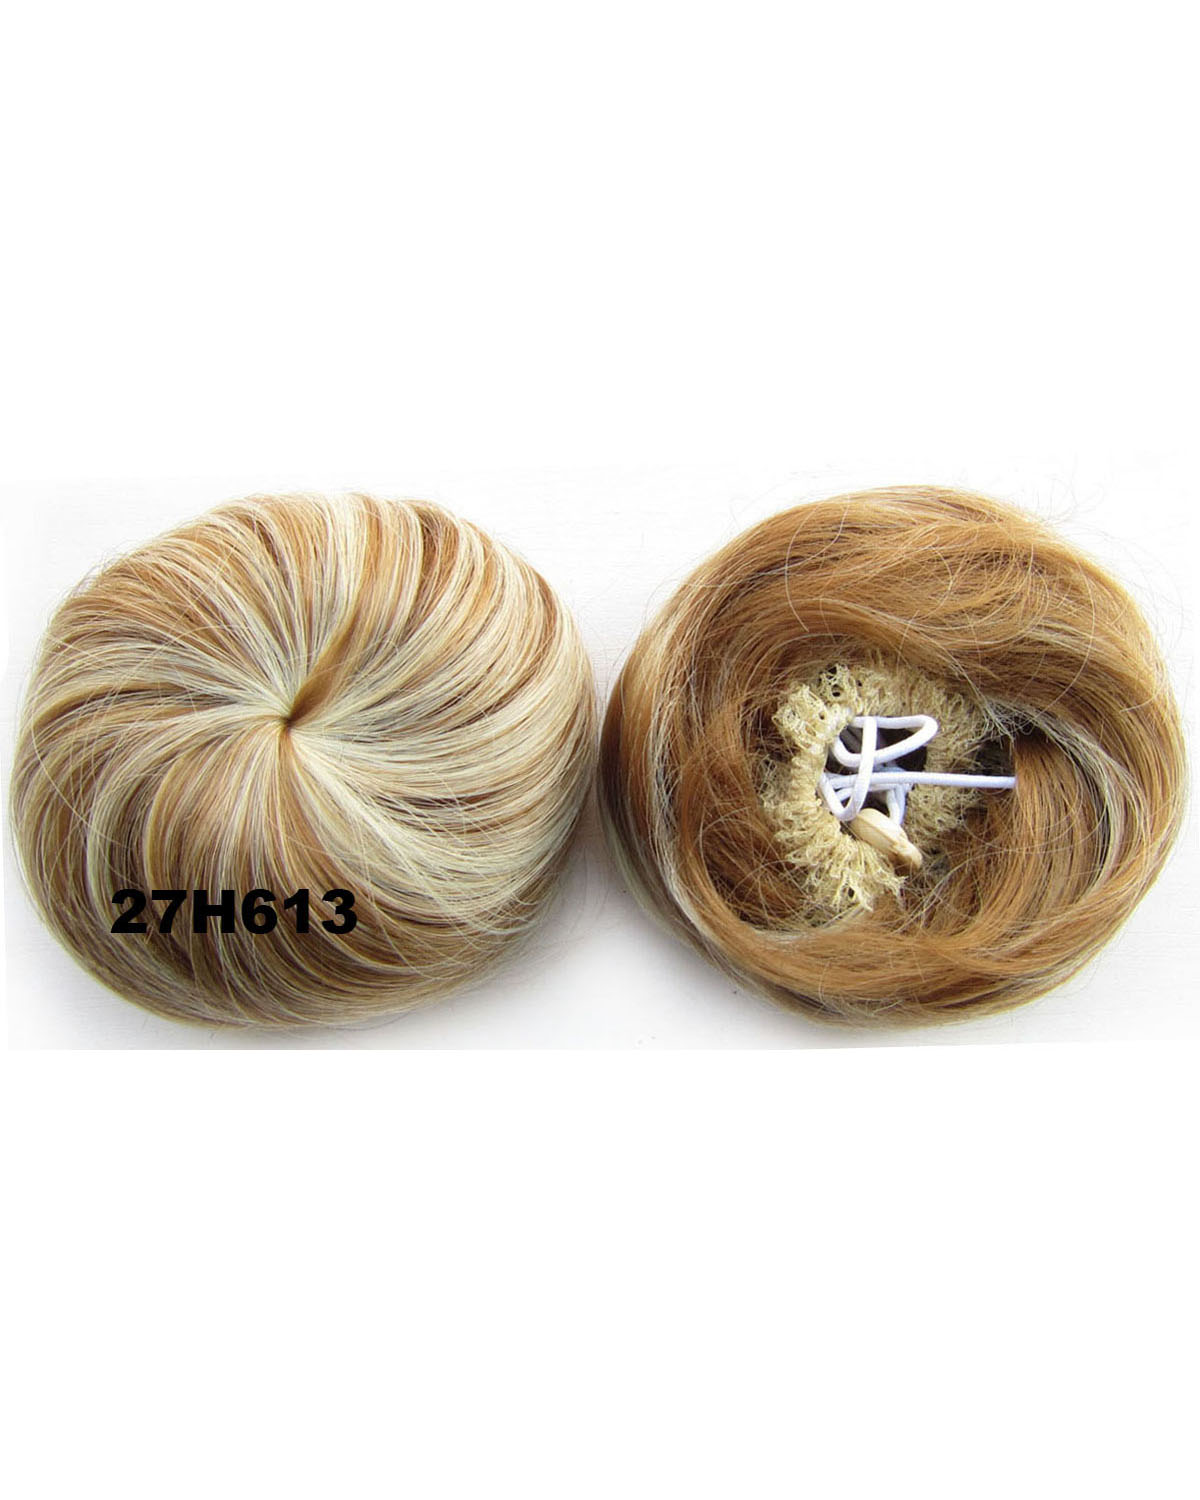 Ladies Clean Straight Short Hair Buns Drawstring Synthetic Hair Extension Bride Scrunchies27H613